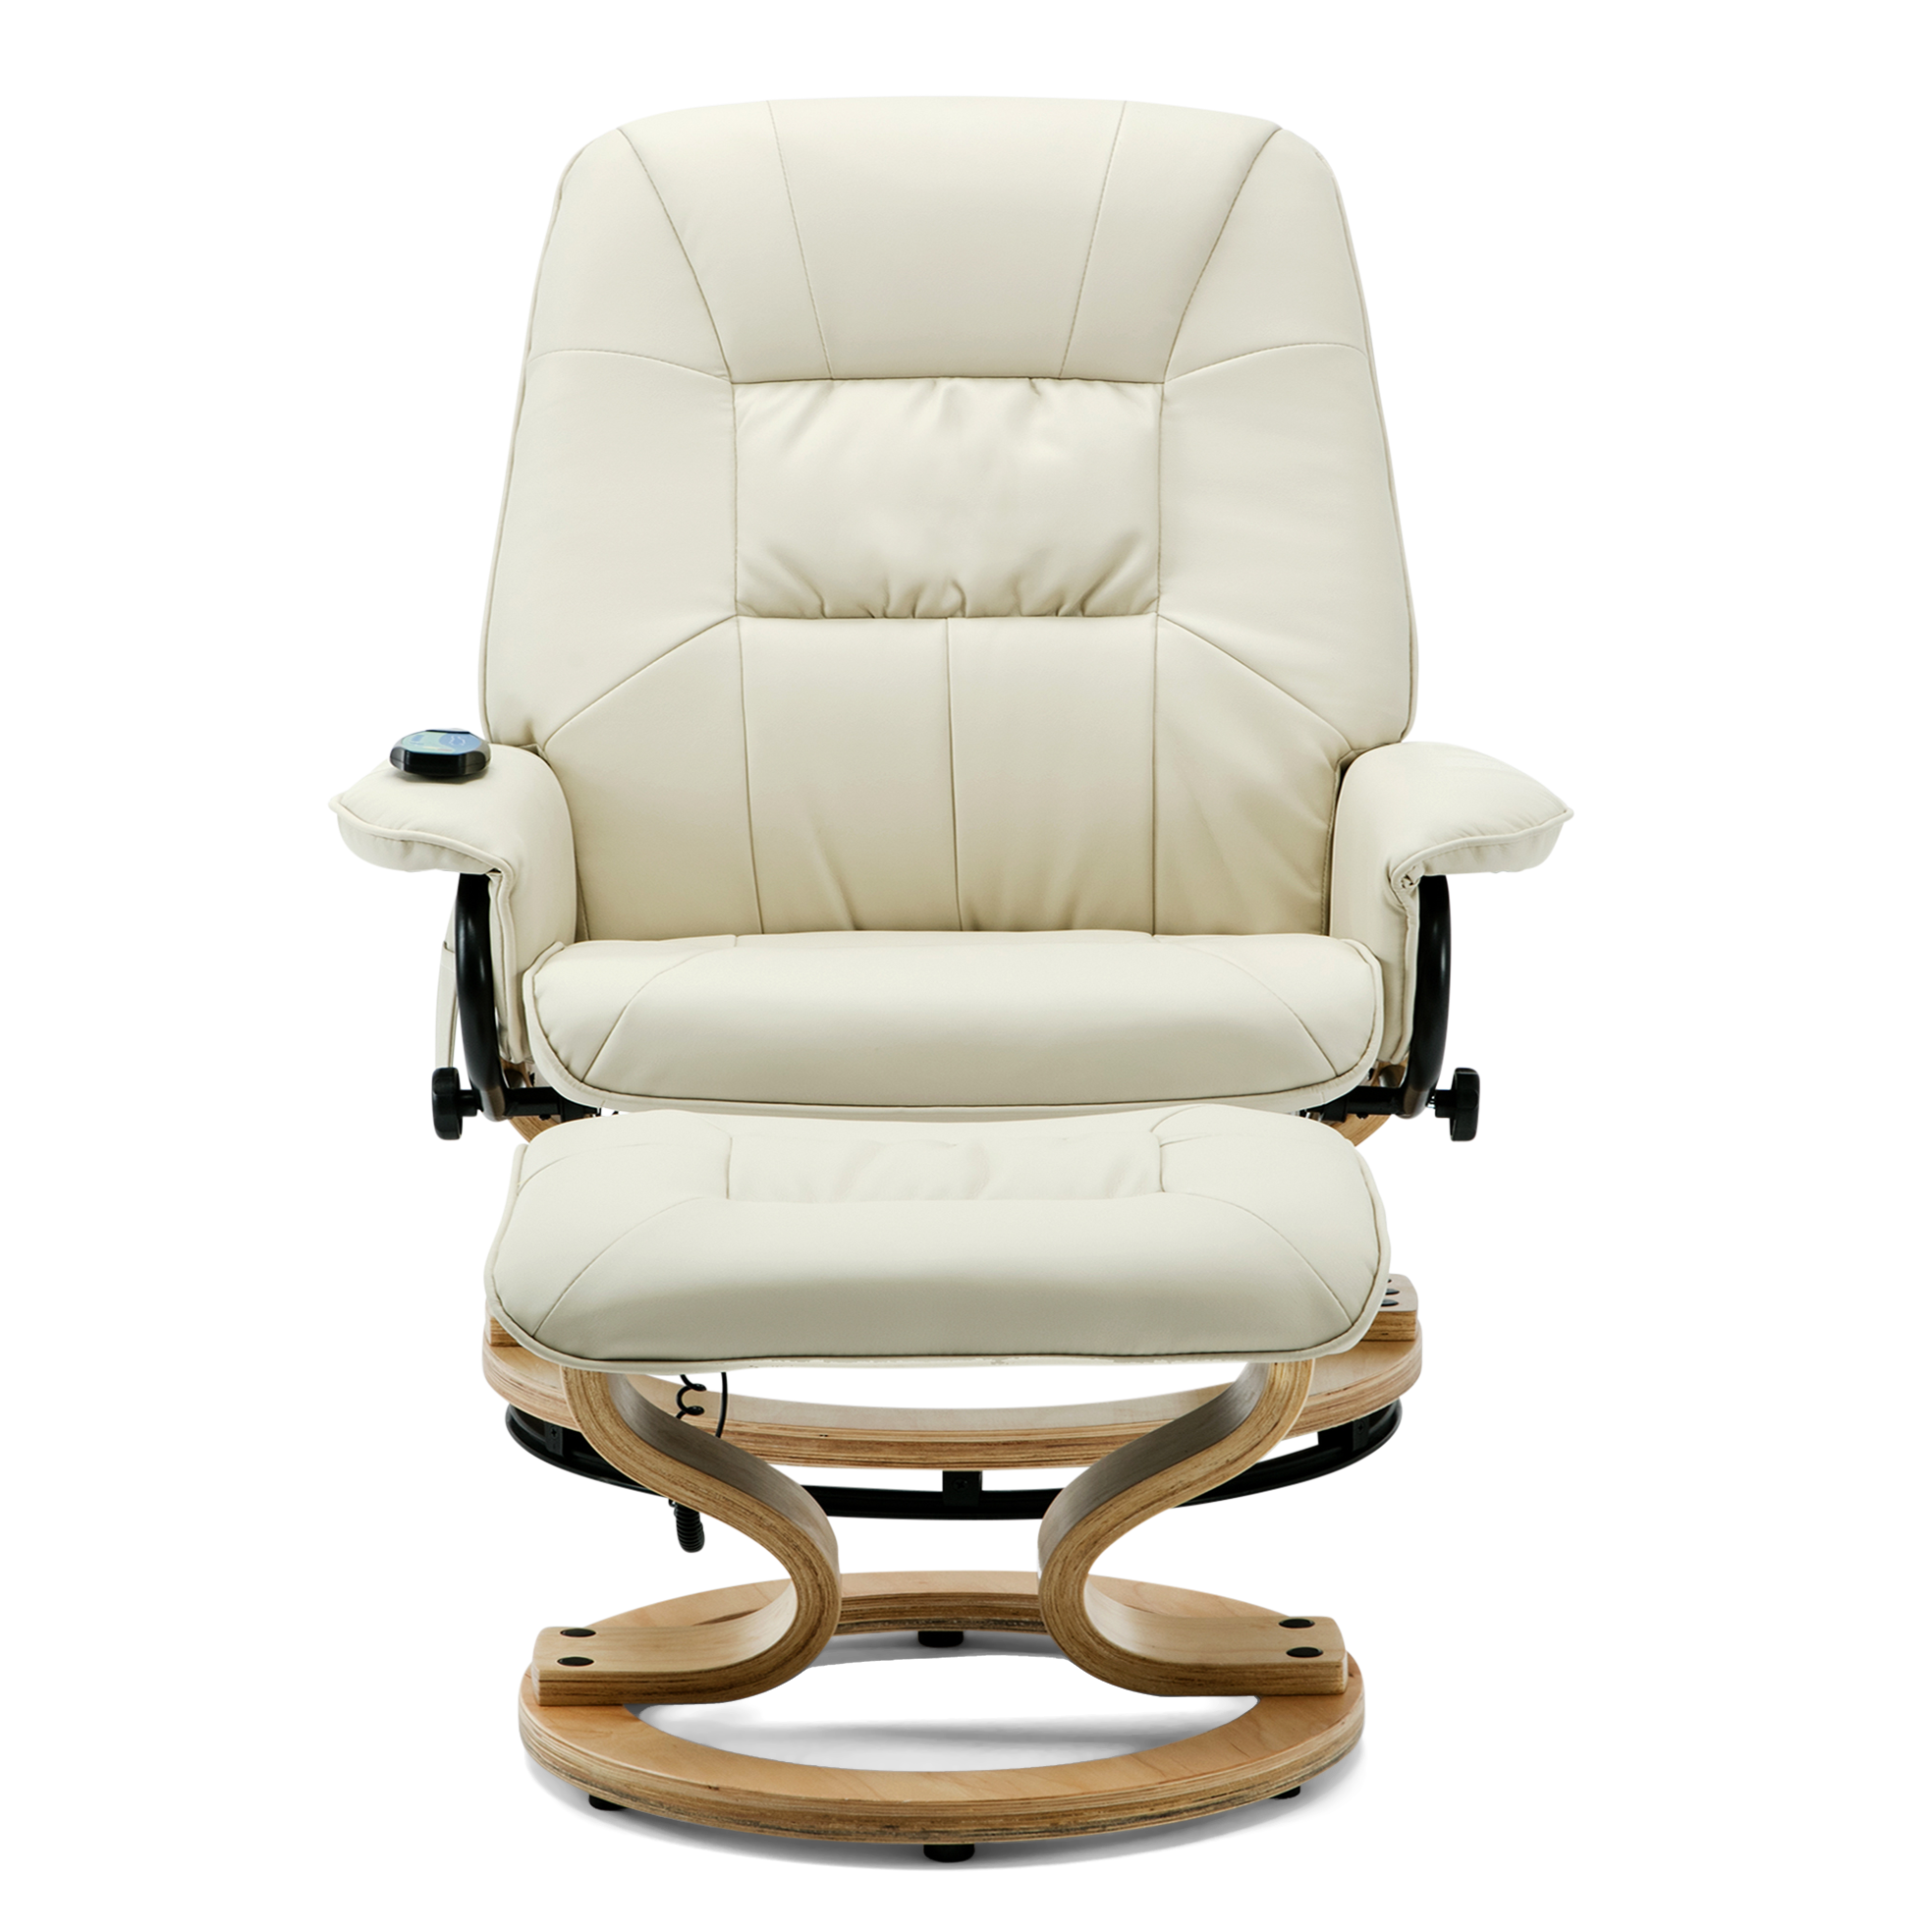 Tilbury Leather Swivel Recliner Chair With Foot Stool In Cream